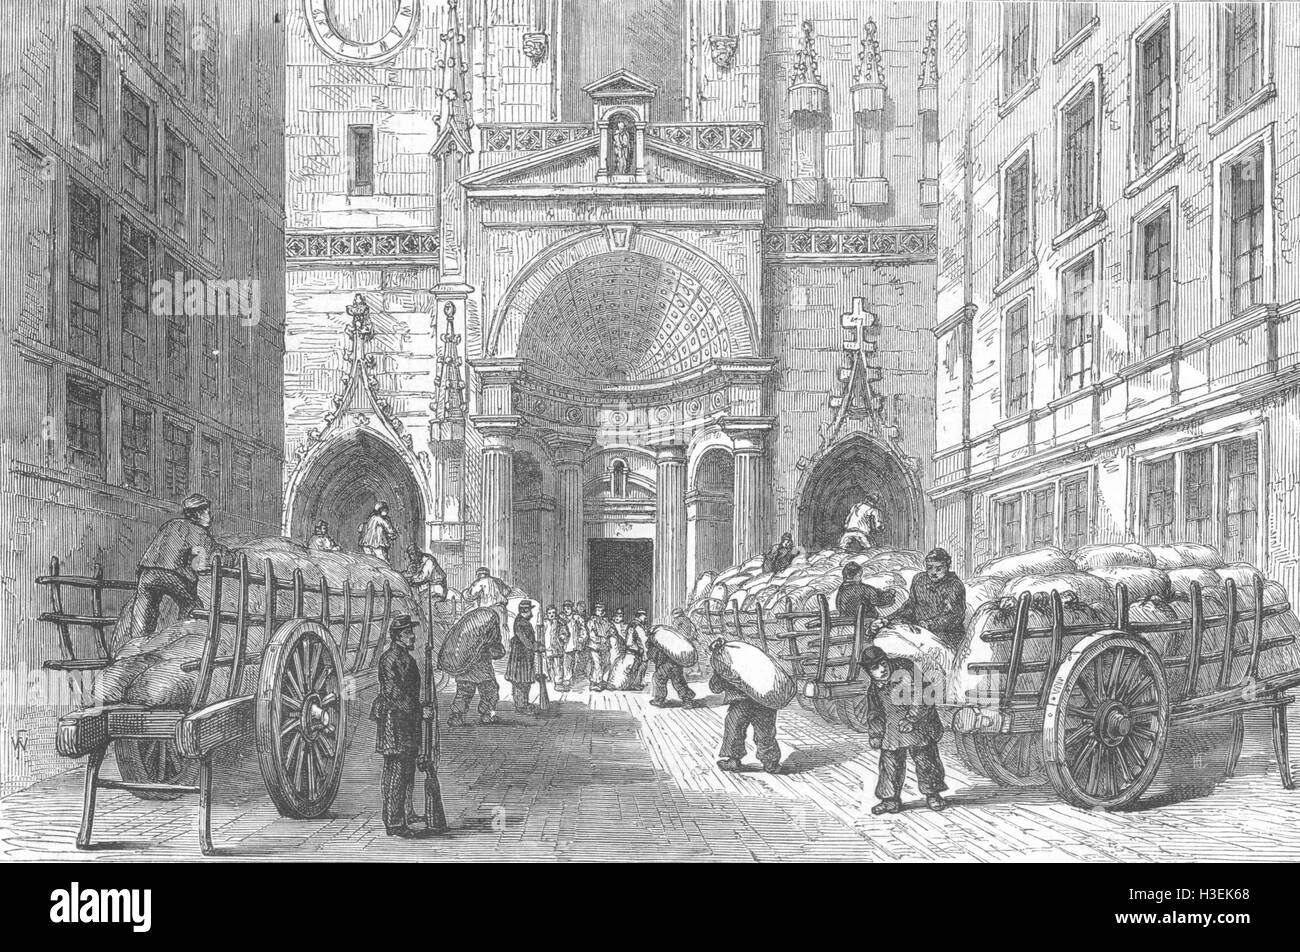 RHÔNE Storing Flour in the church of St Nizier, Lyons 1870. The Illustrated London News - Stock Image